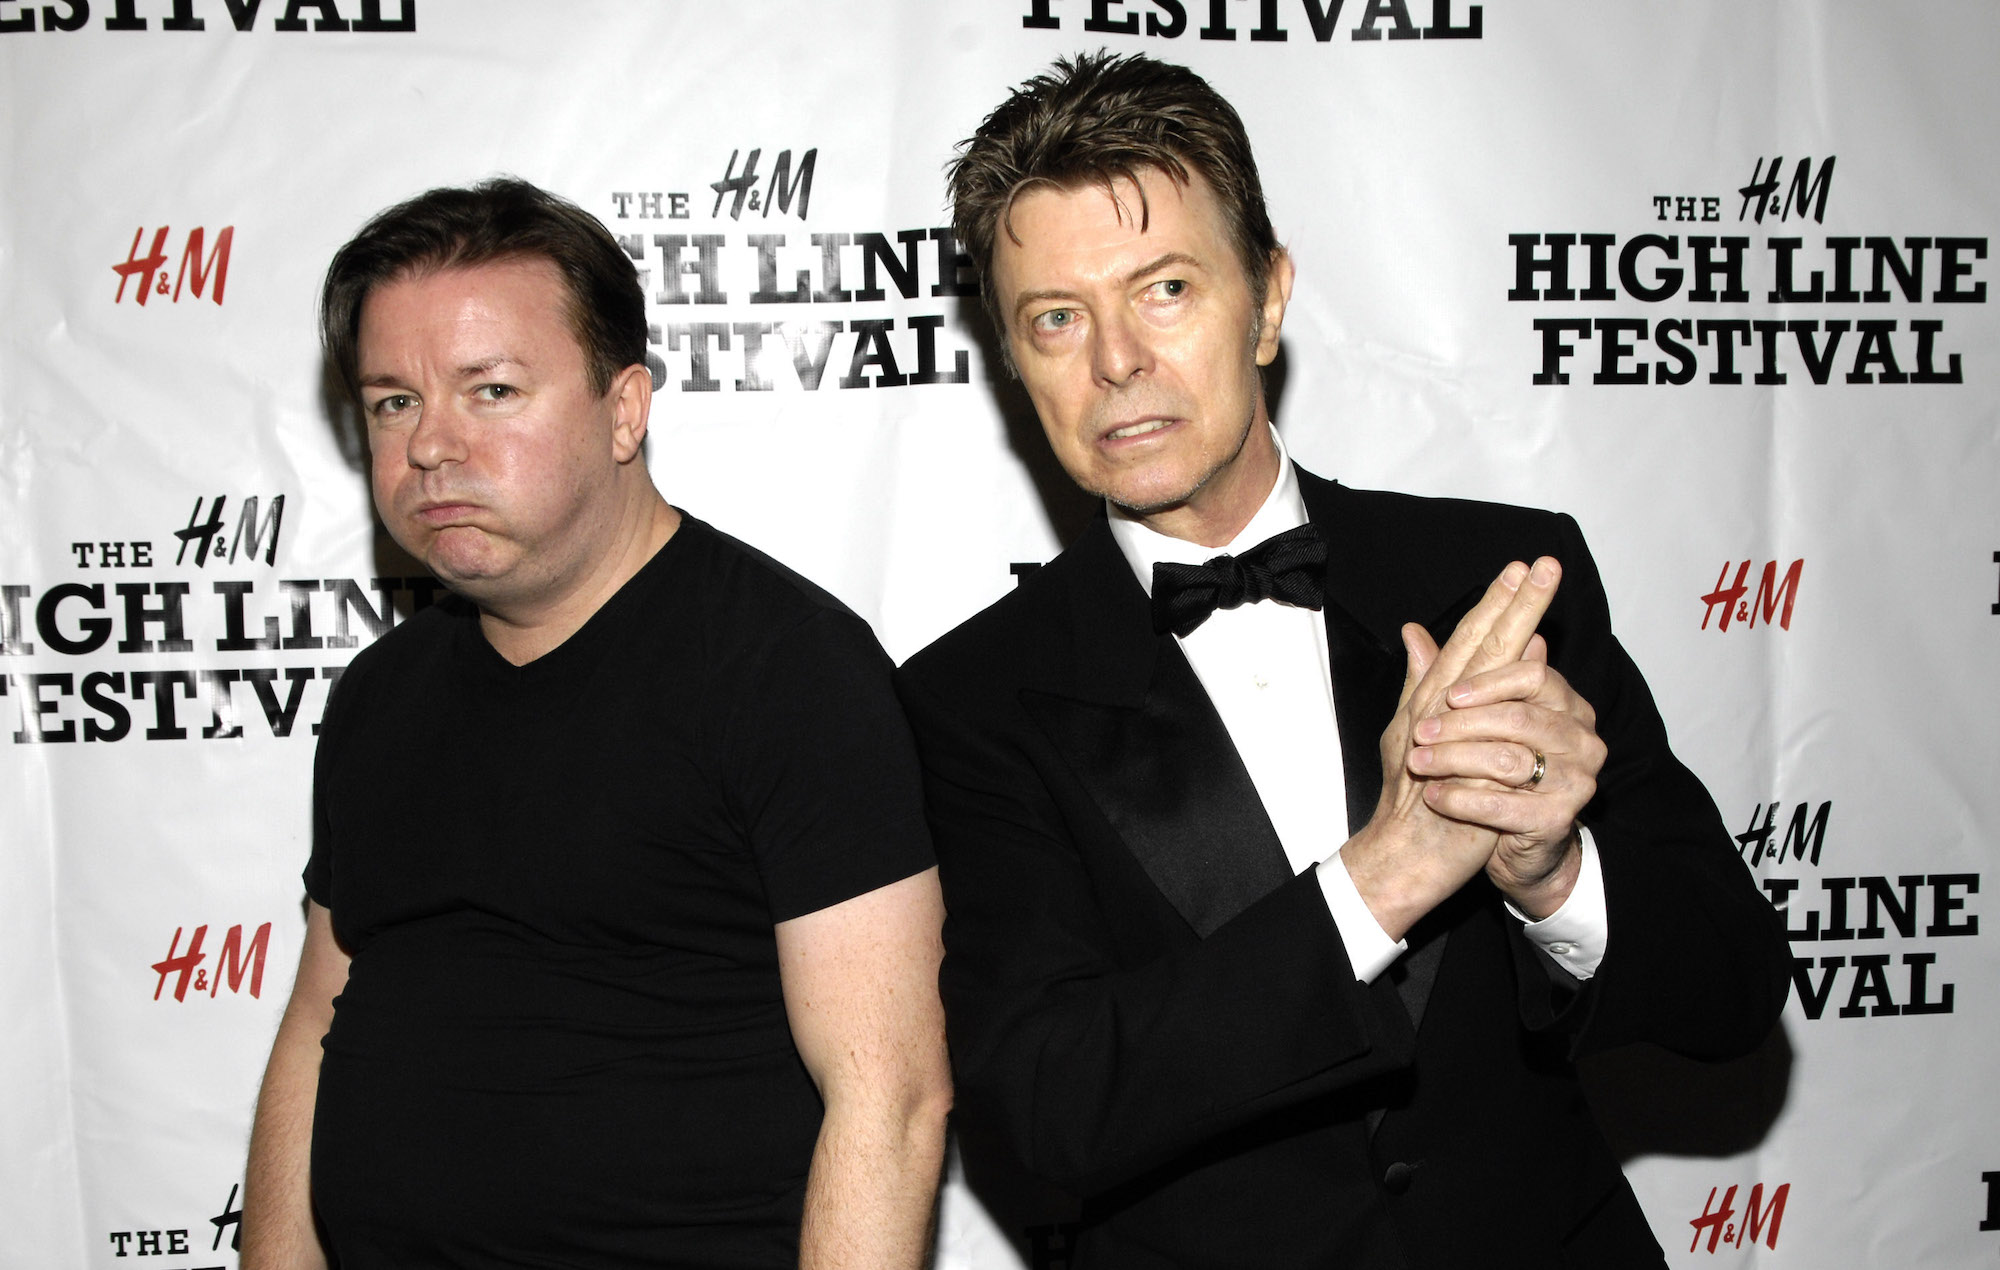 Ricky Gervais recalls the nerve-wracking time he first met David Bowie